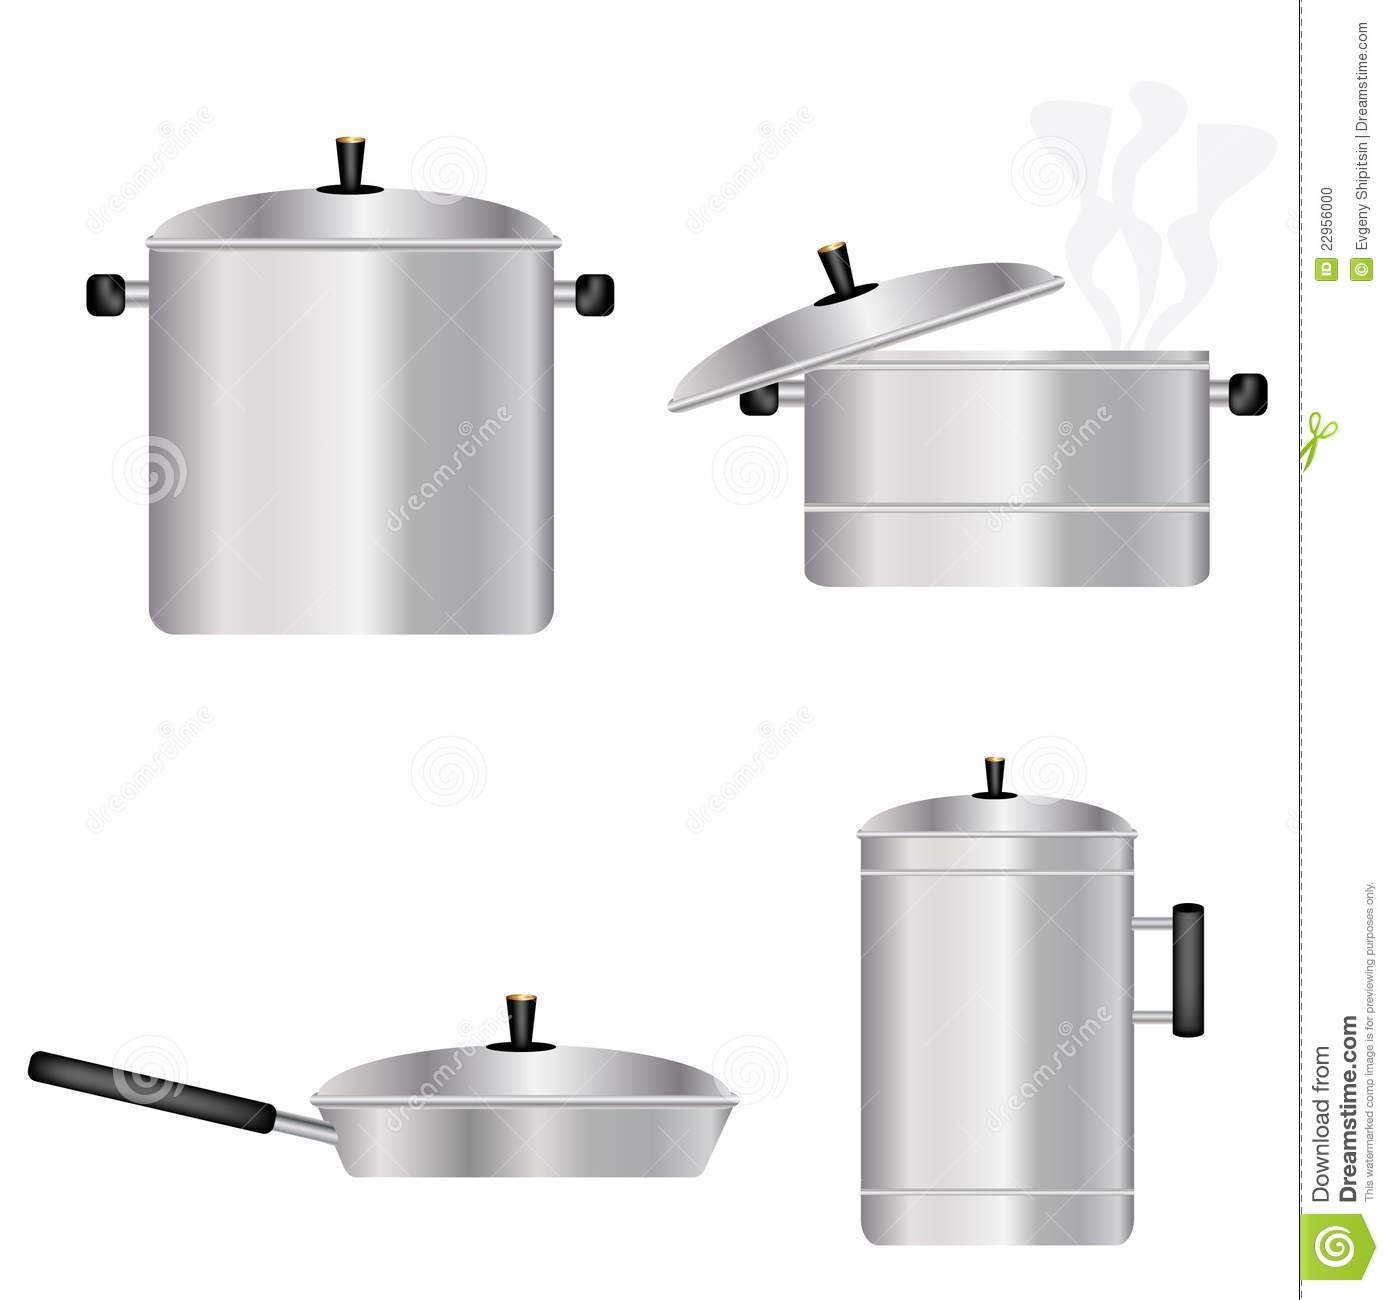 dishes for kitchen stock photo - image: 22956000